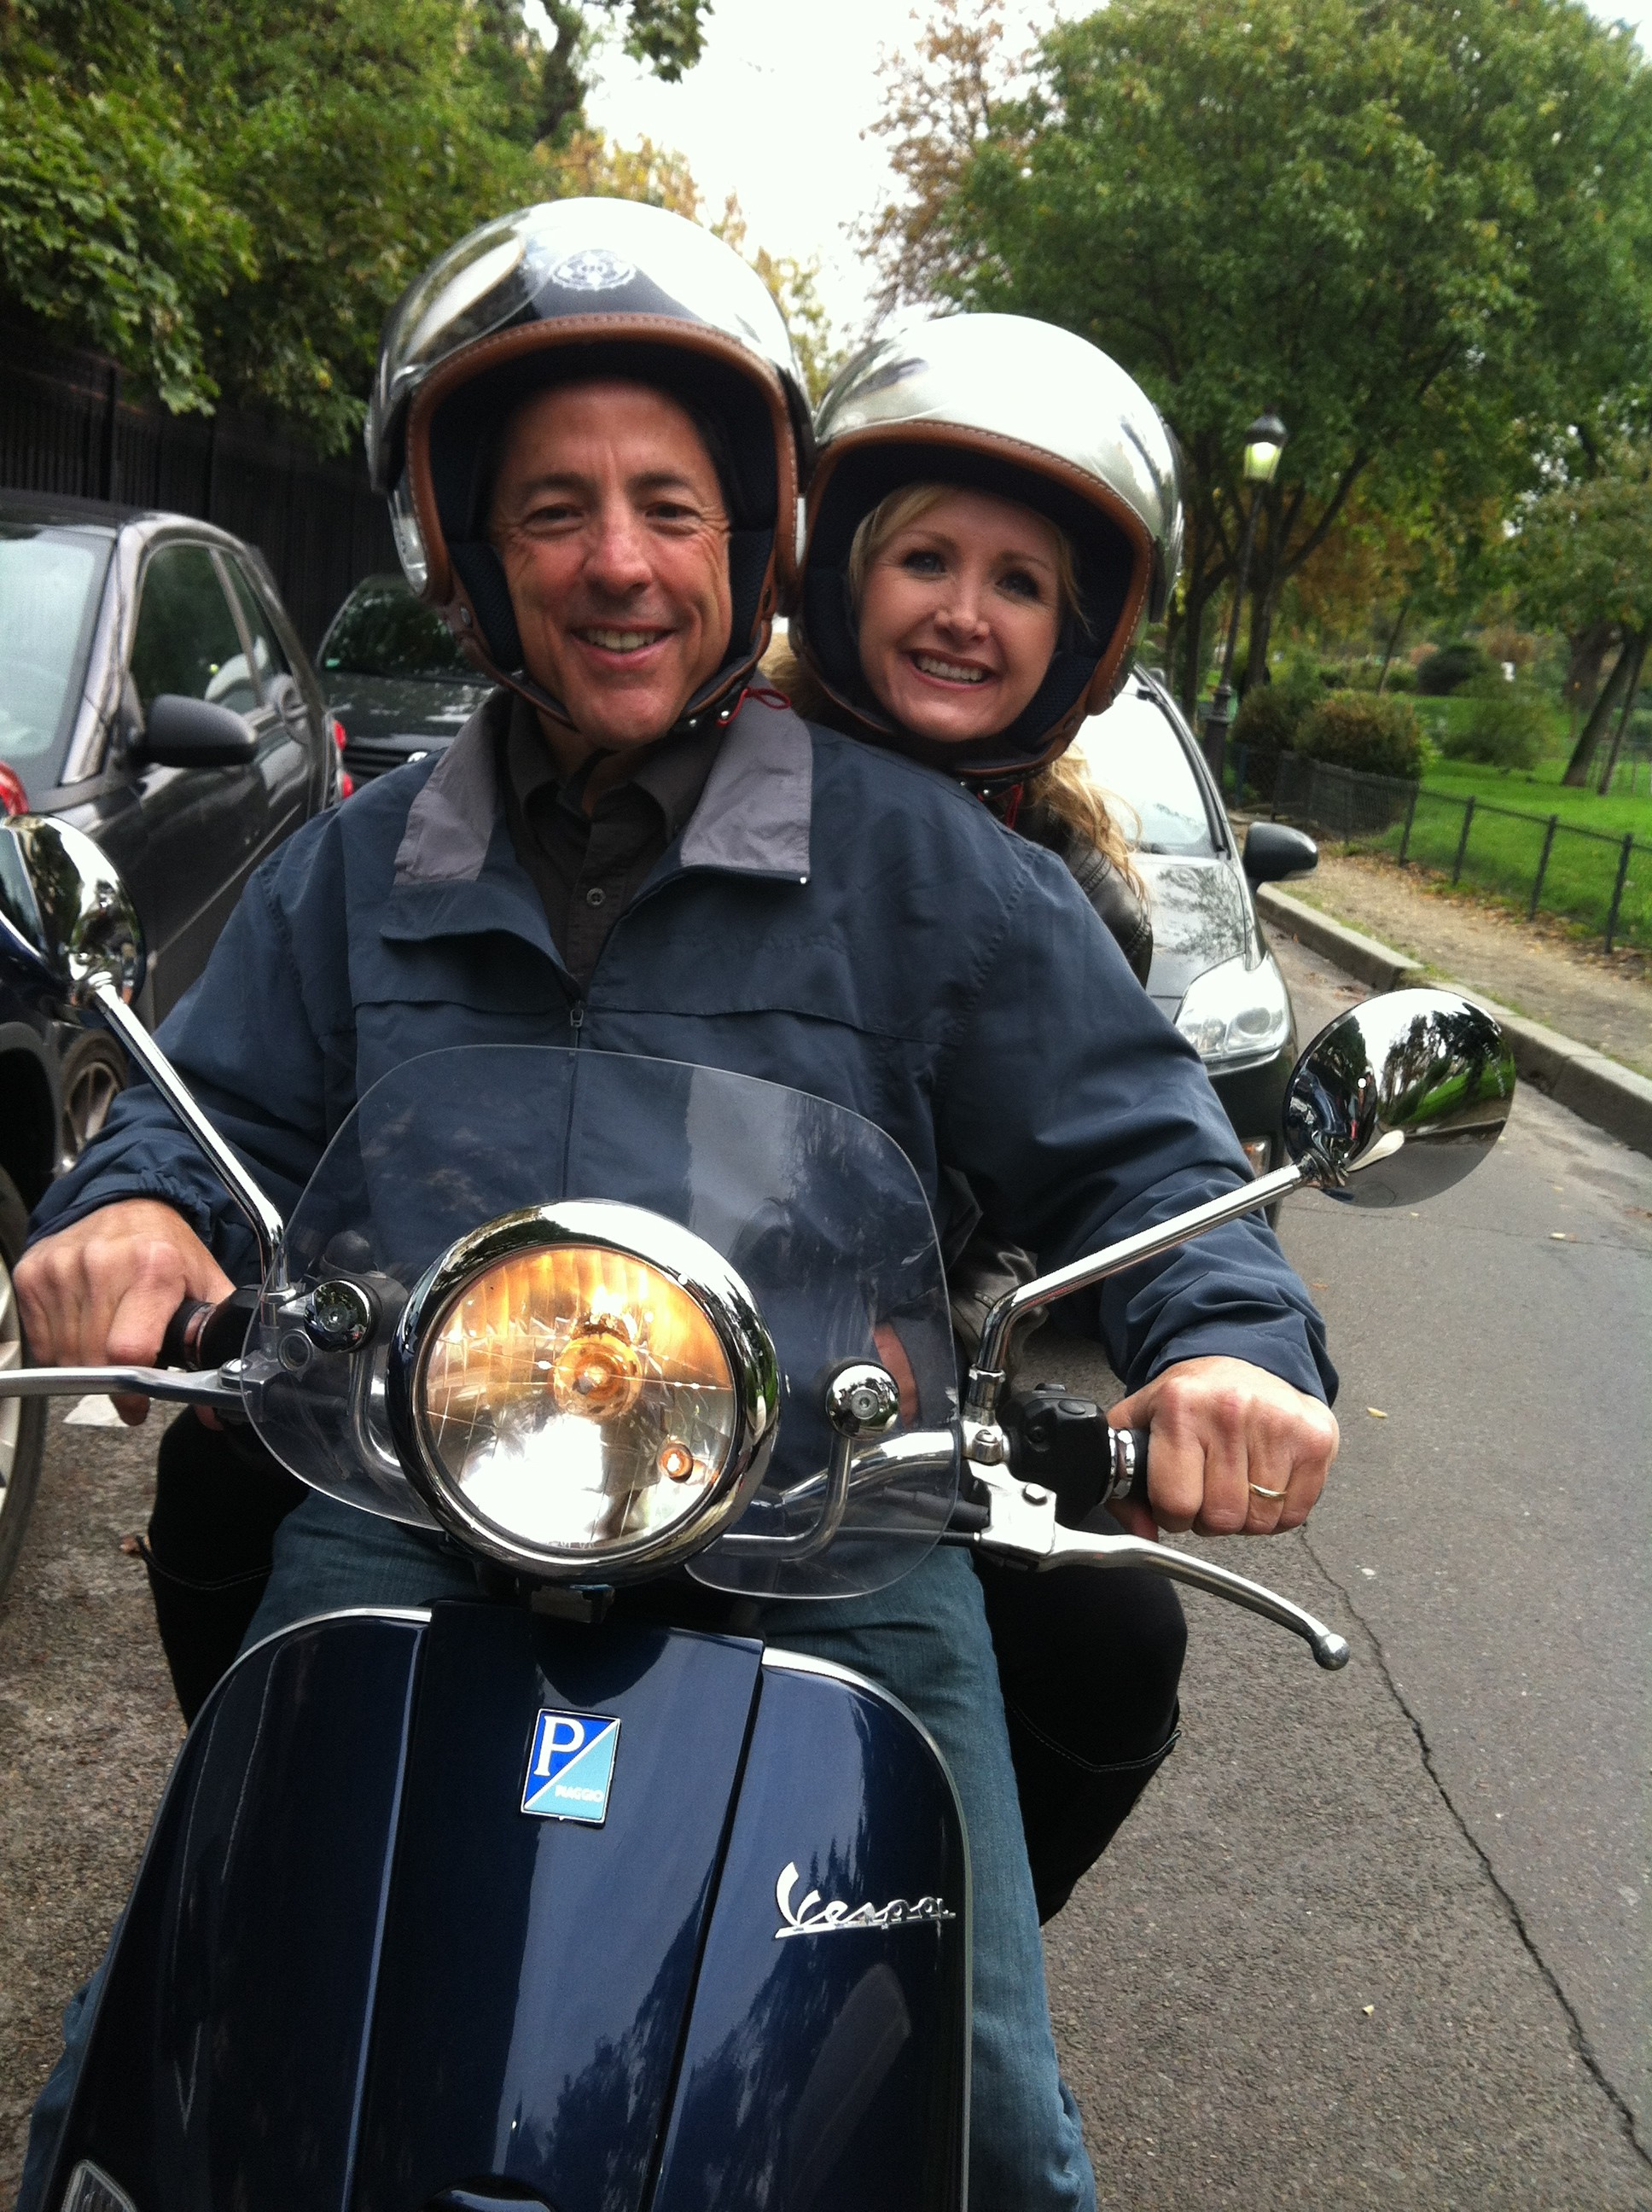 Carrie & Boby at the wheel of a Vespa scooter in the street of Paris France during a Paris sightseeing Tour.